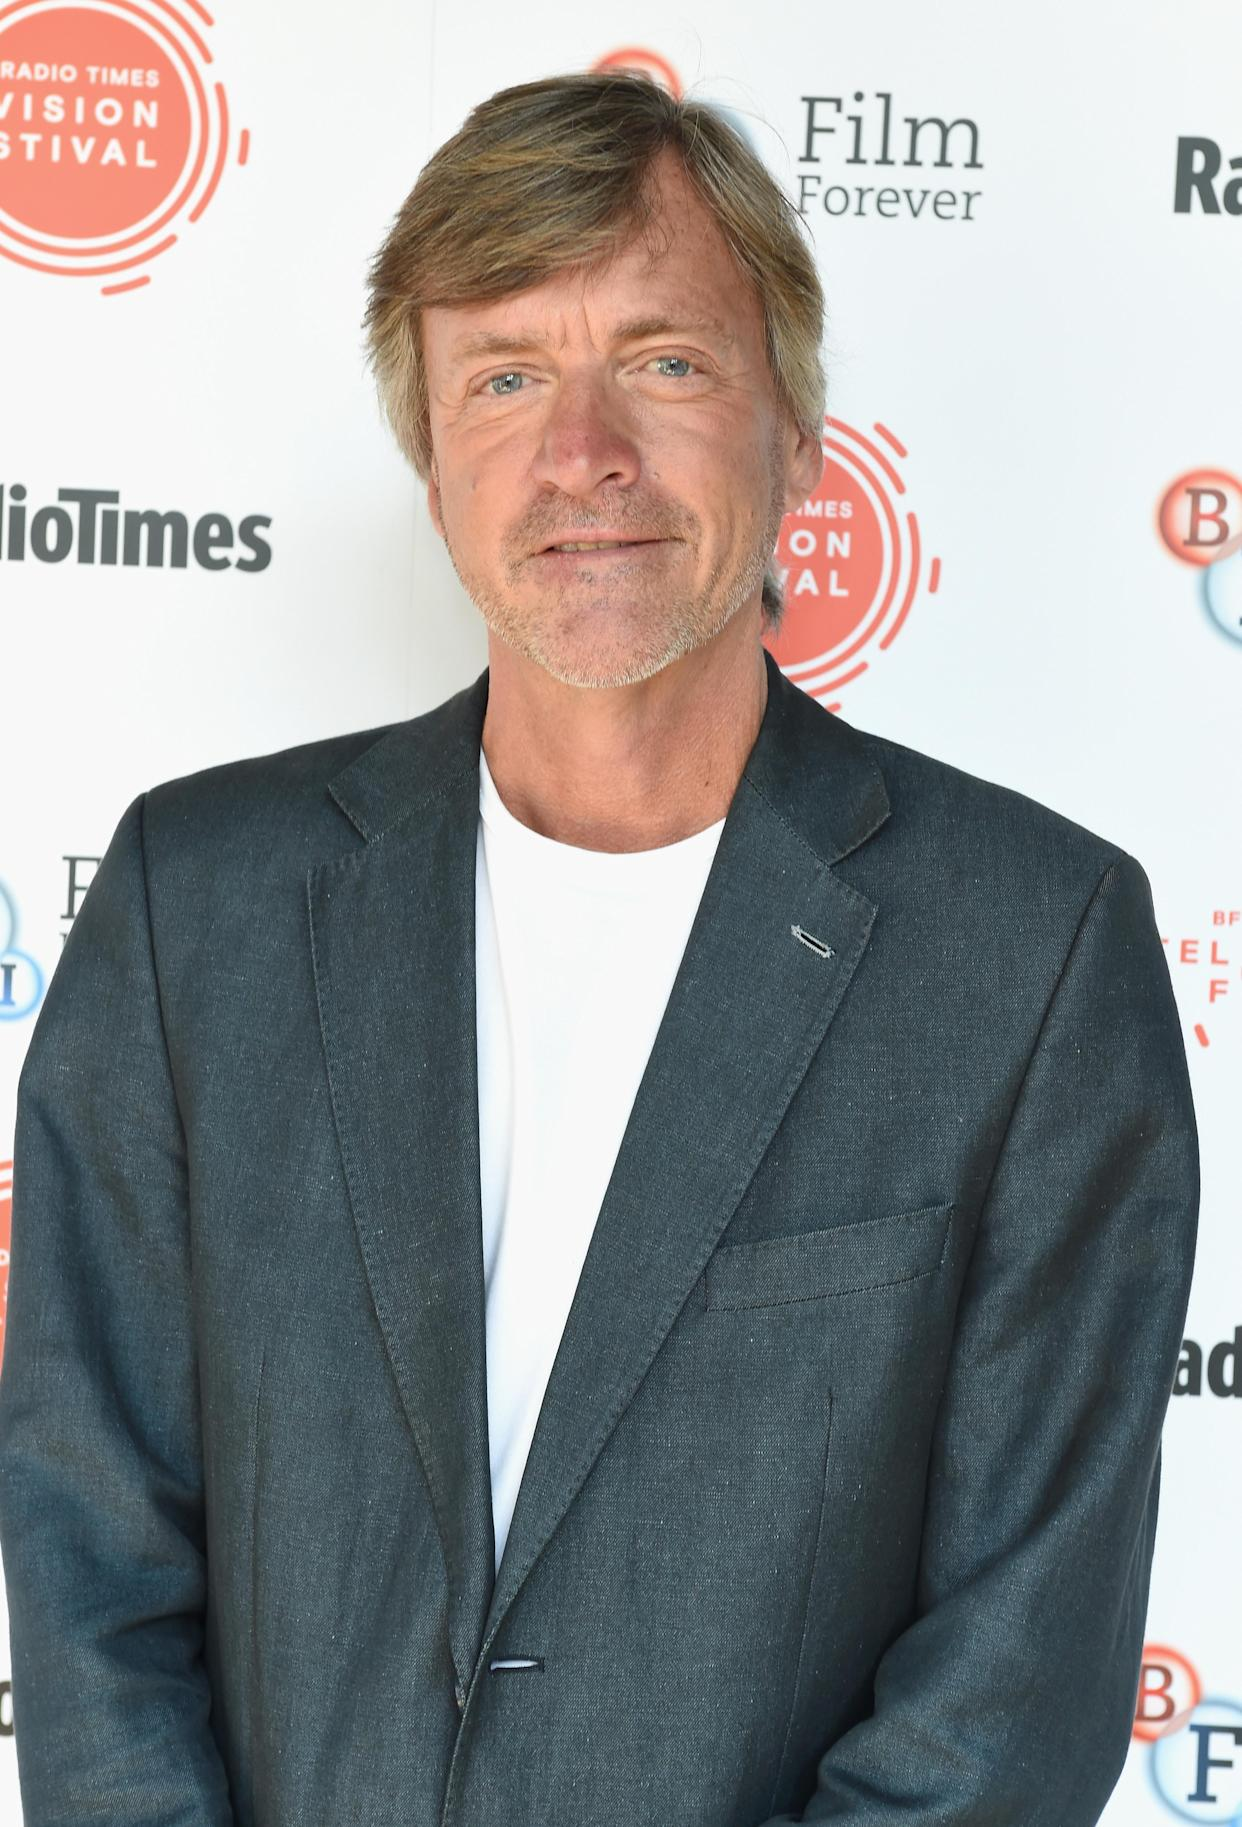 LONDON, ENGLAND - APRIL 08:  Richard Madeley attends the BFI & Radio Times TV Festival at the BFI Southbank on April 8, 2017 in London, England.  (Photo by Tabatha Fireman/Getty Images)